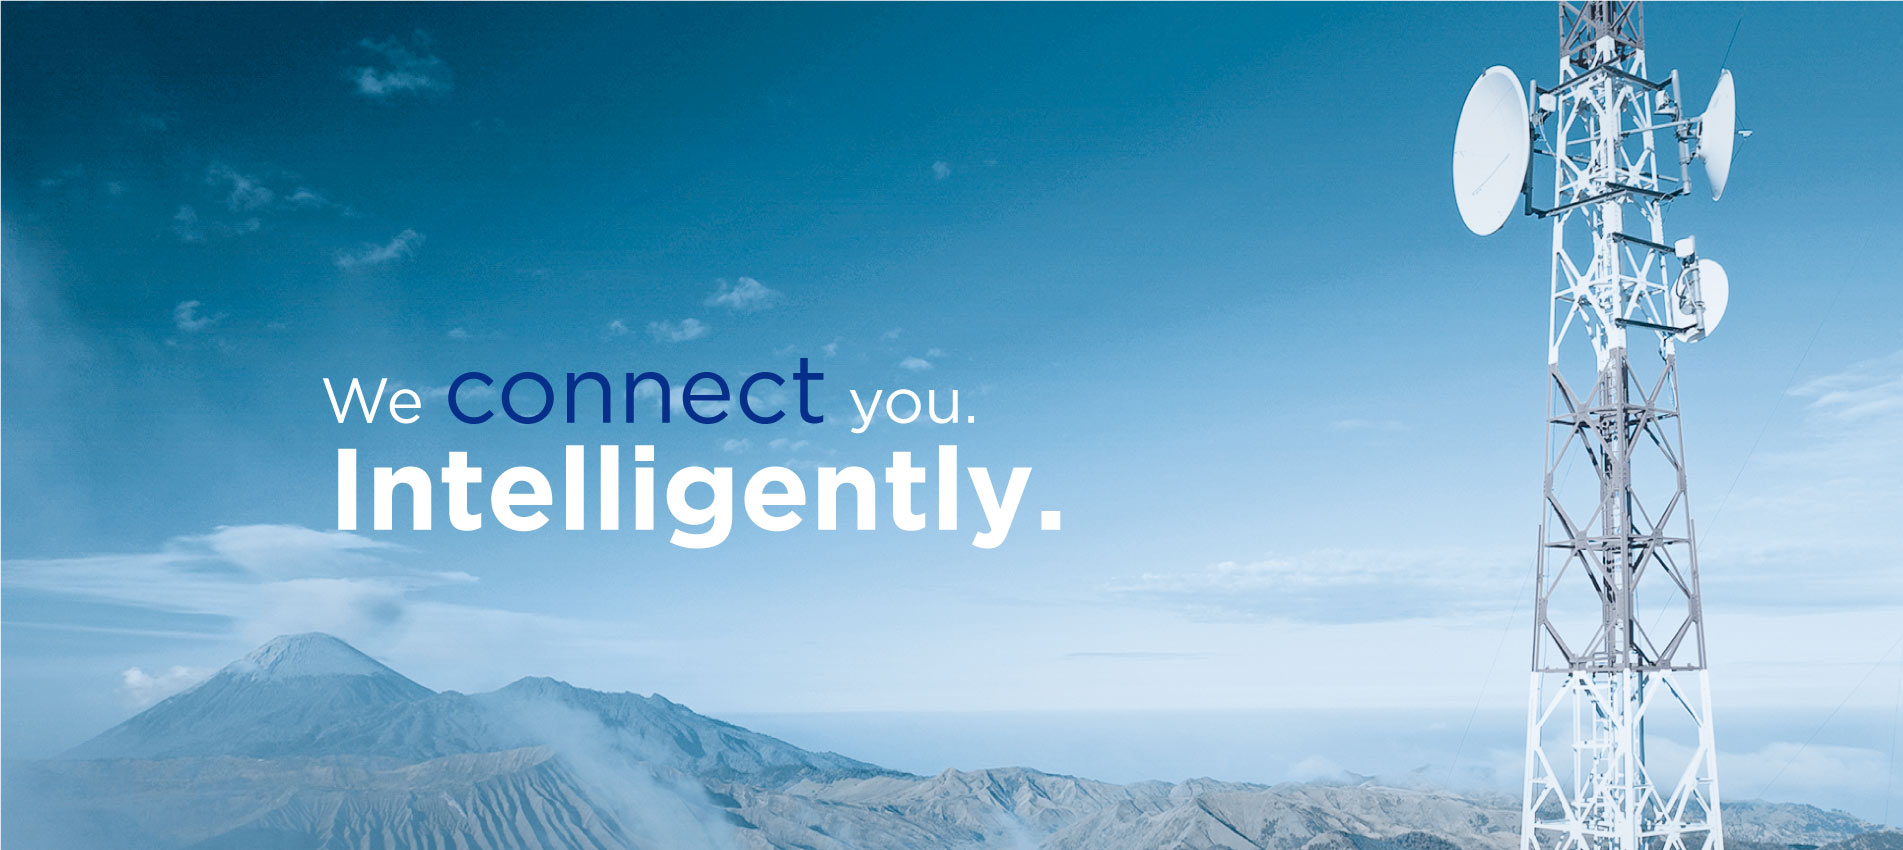 Azcom Connect You Intelligently